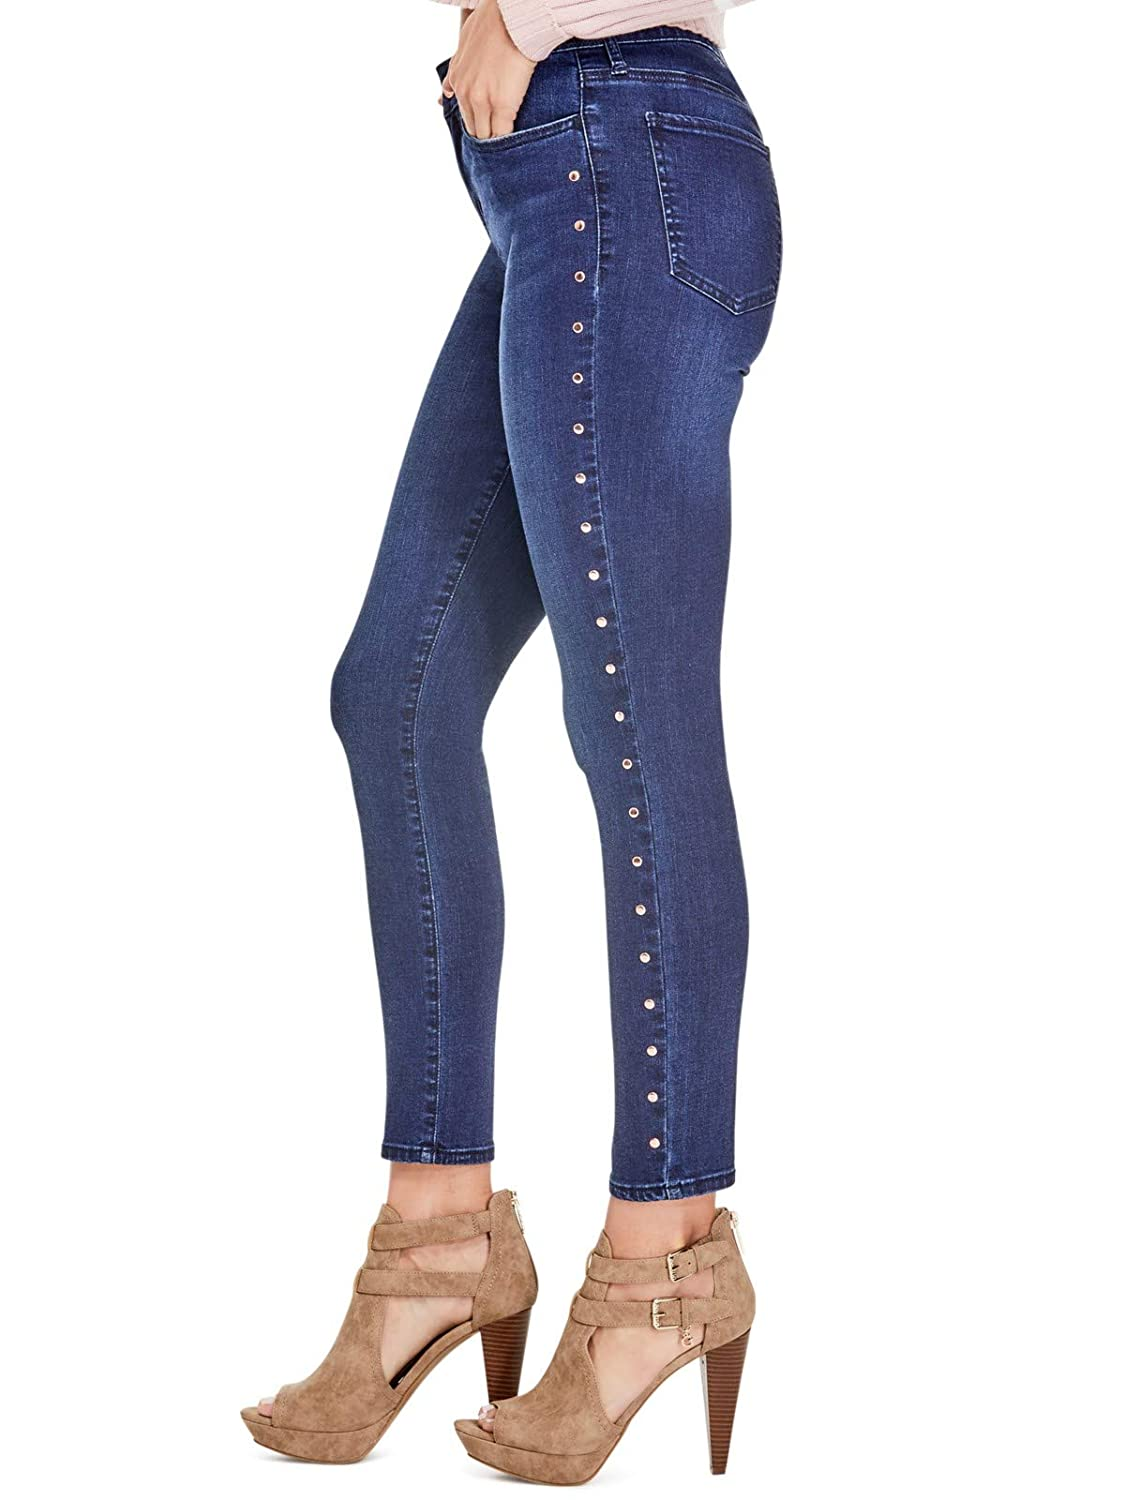 Guess Factory Women's Blaike Studded Skinny Jeans GuessFactory